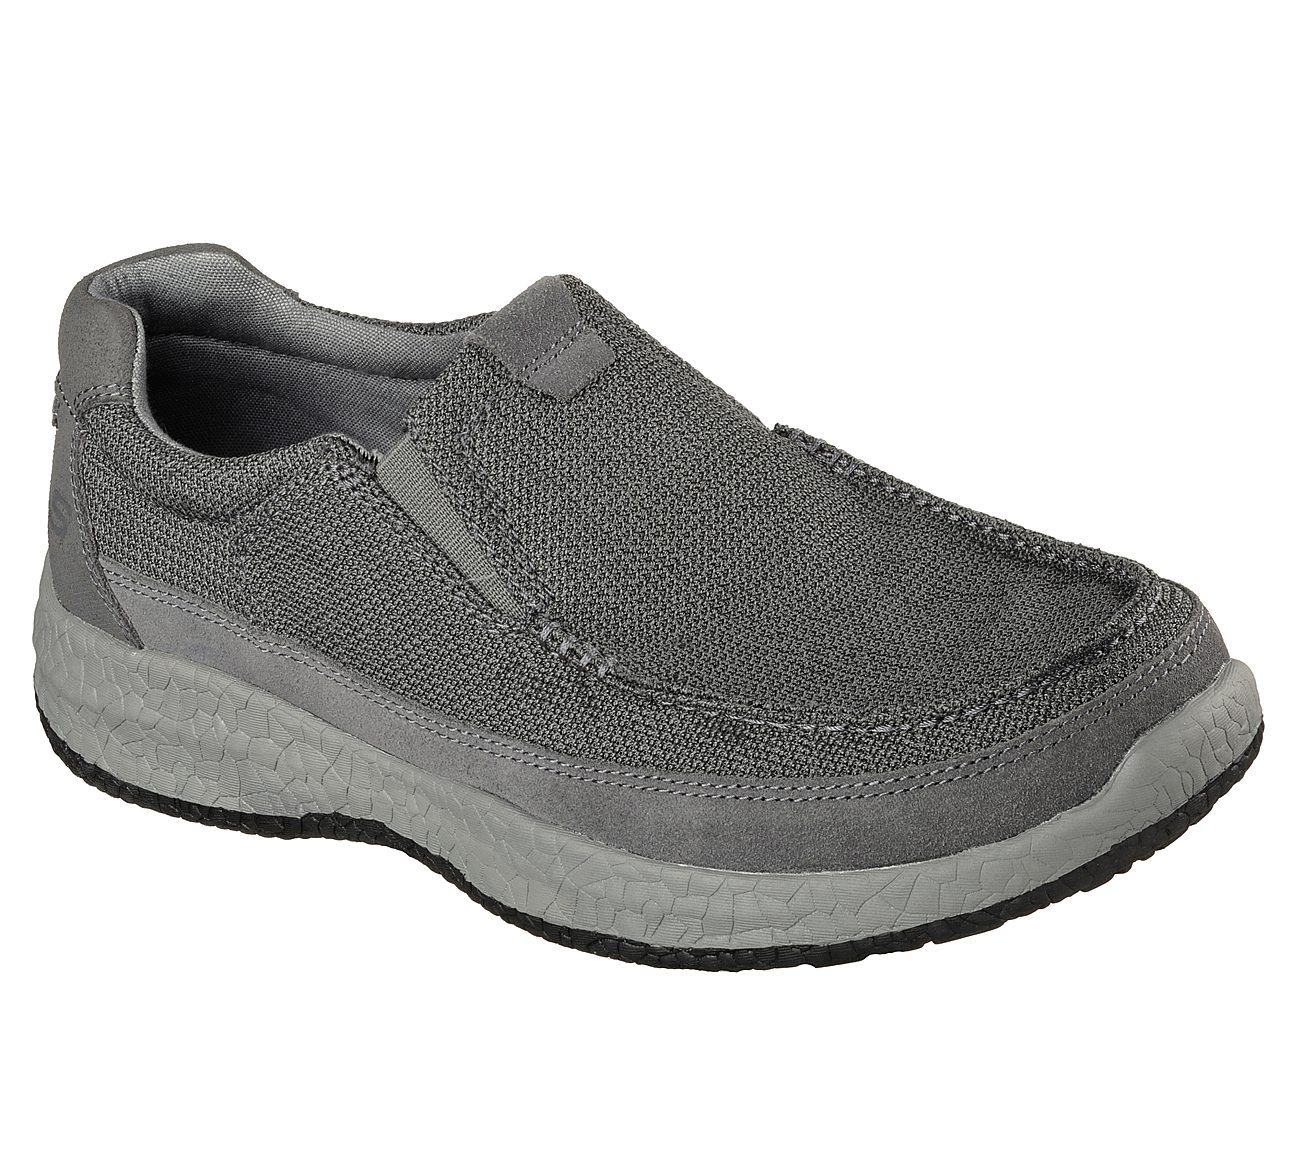 047ec4d8207 Buy skechers relax fit shoes   OFF46% Discounted